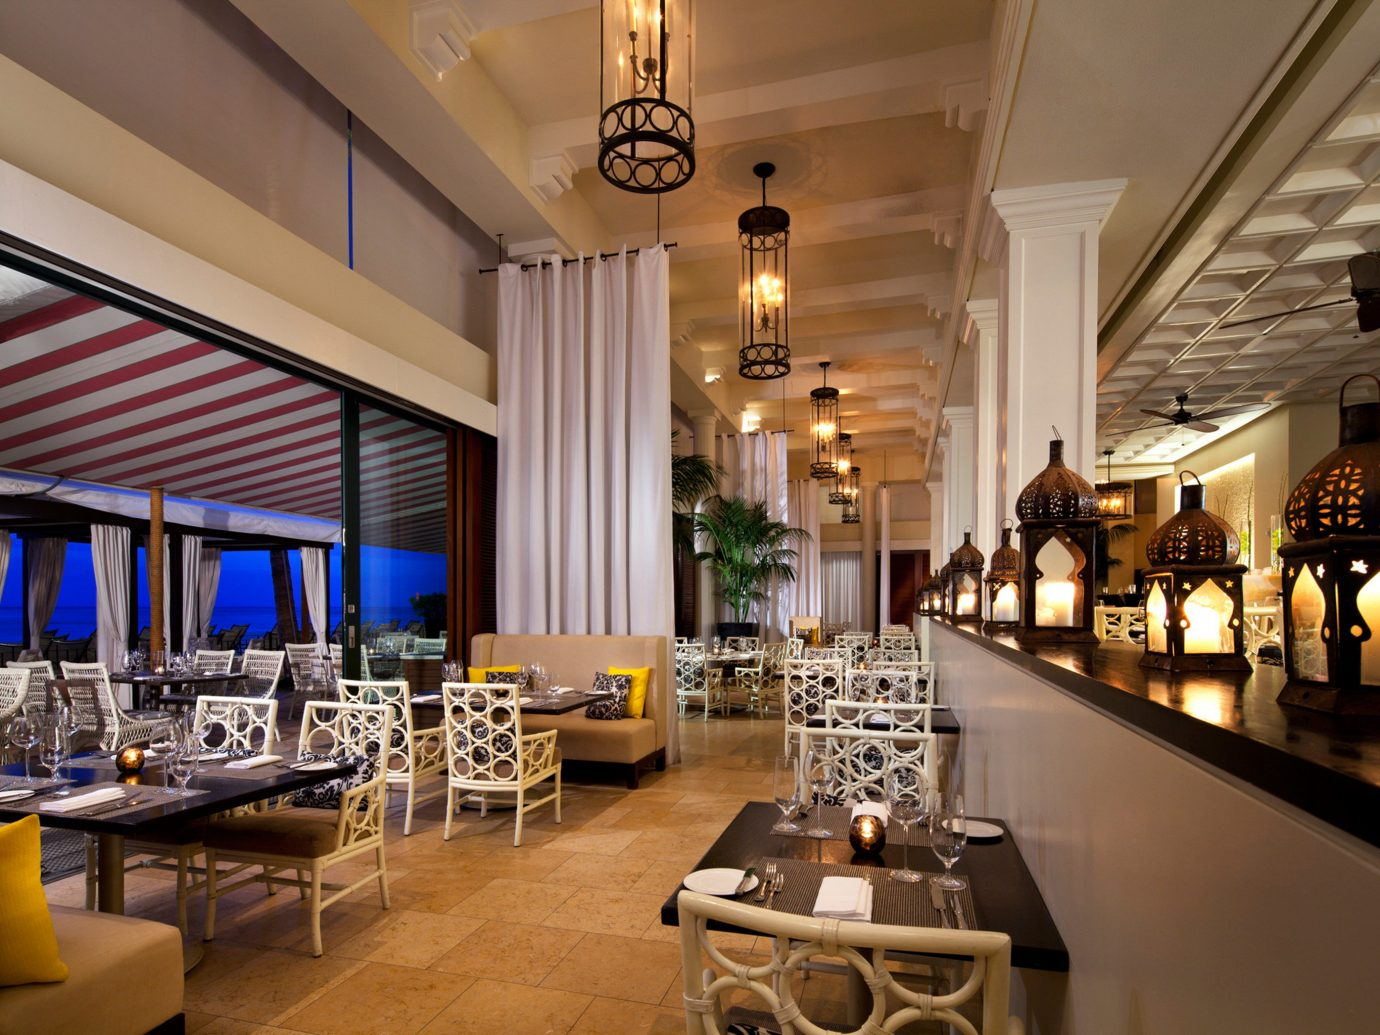 Boutique Hotels Hawaii Honolulu Hotels table indoor room restaurant function hall meal interior design estate Lobby Dining Design ballroom furniture Bar Island